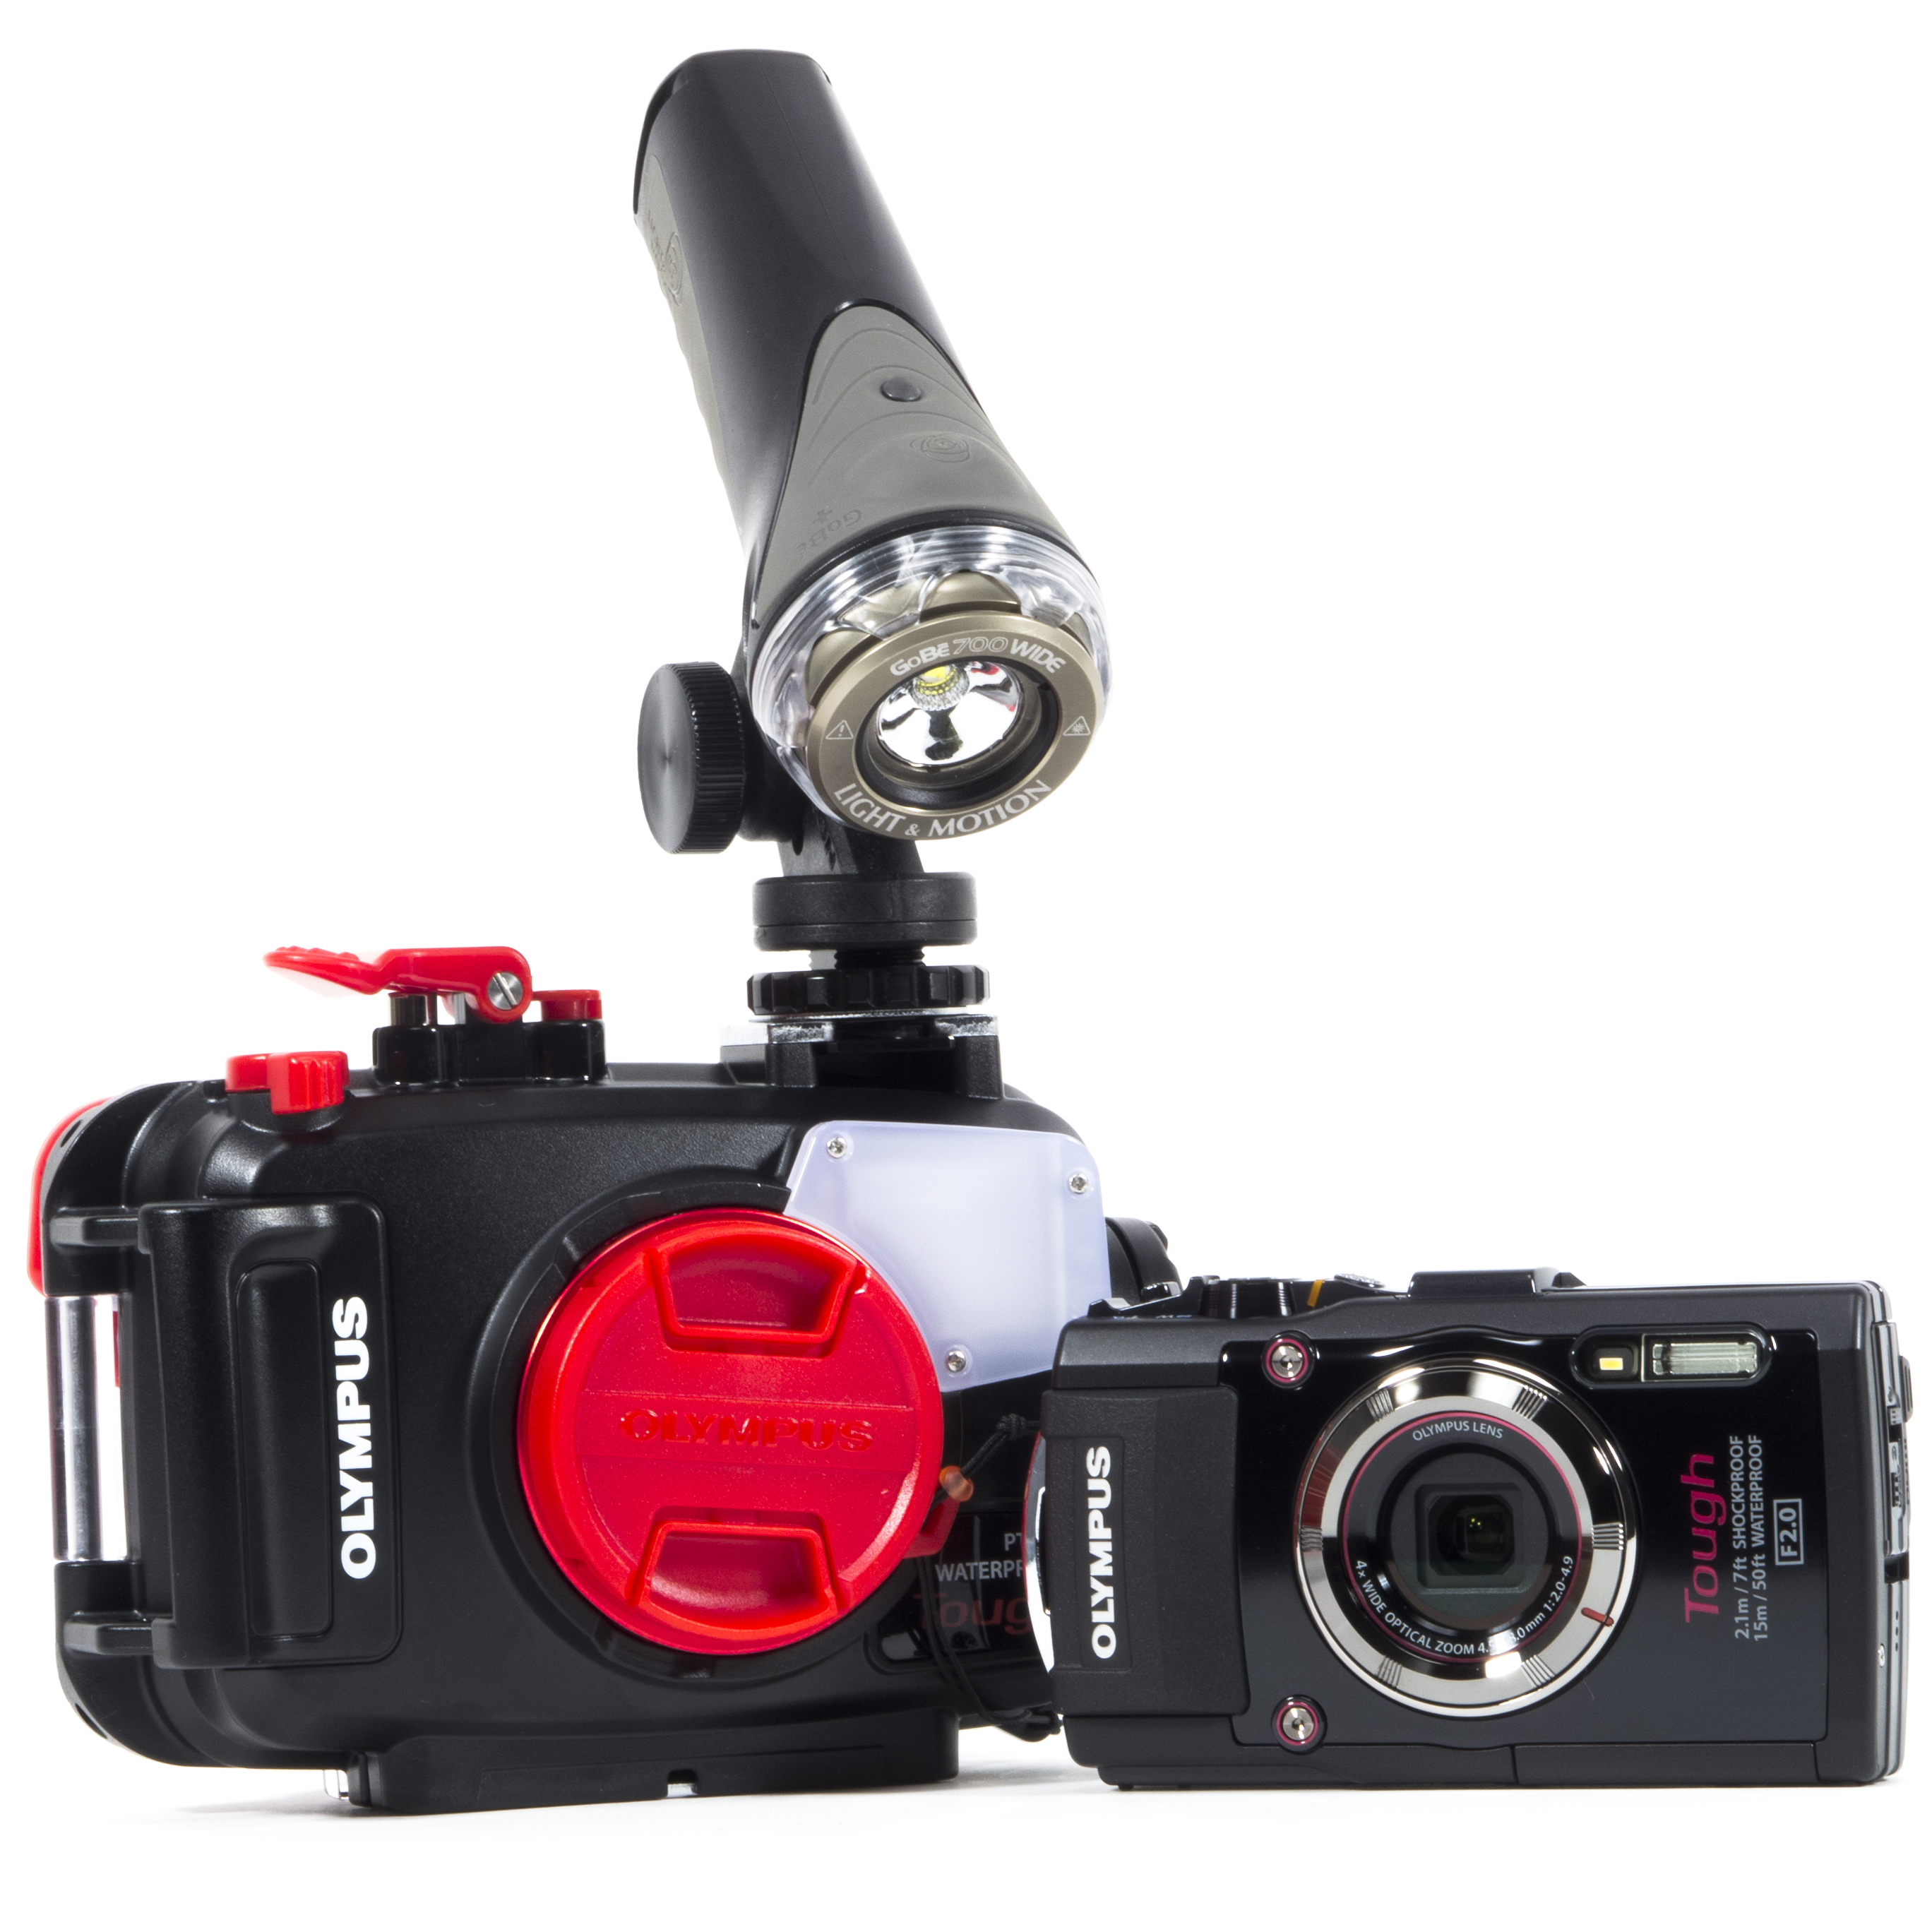 Olympus Tough TG-3 Camera - Using a Video Light Instead of Strobe to shoot Macro